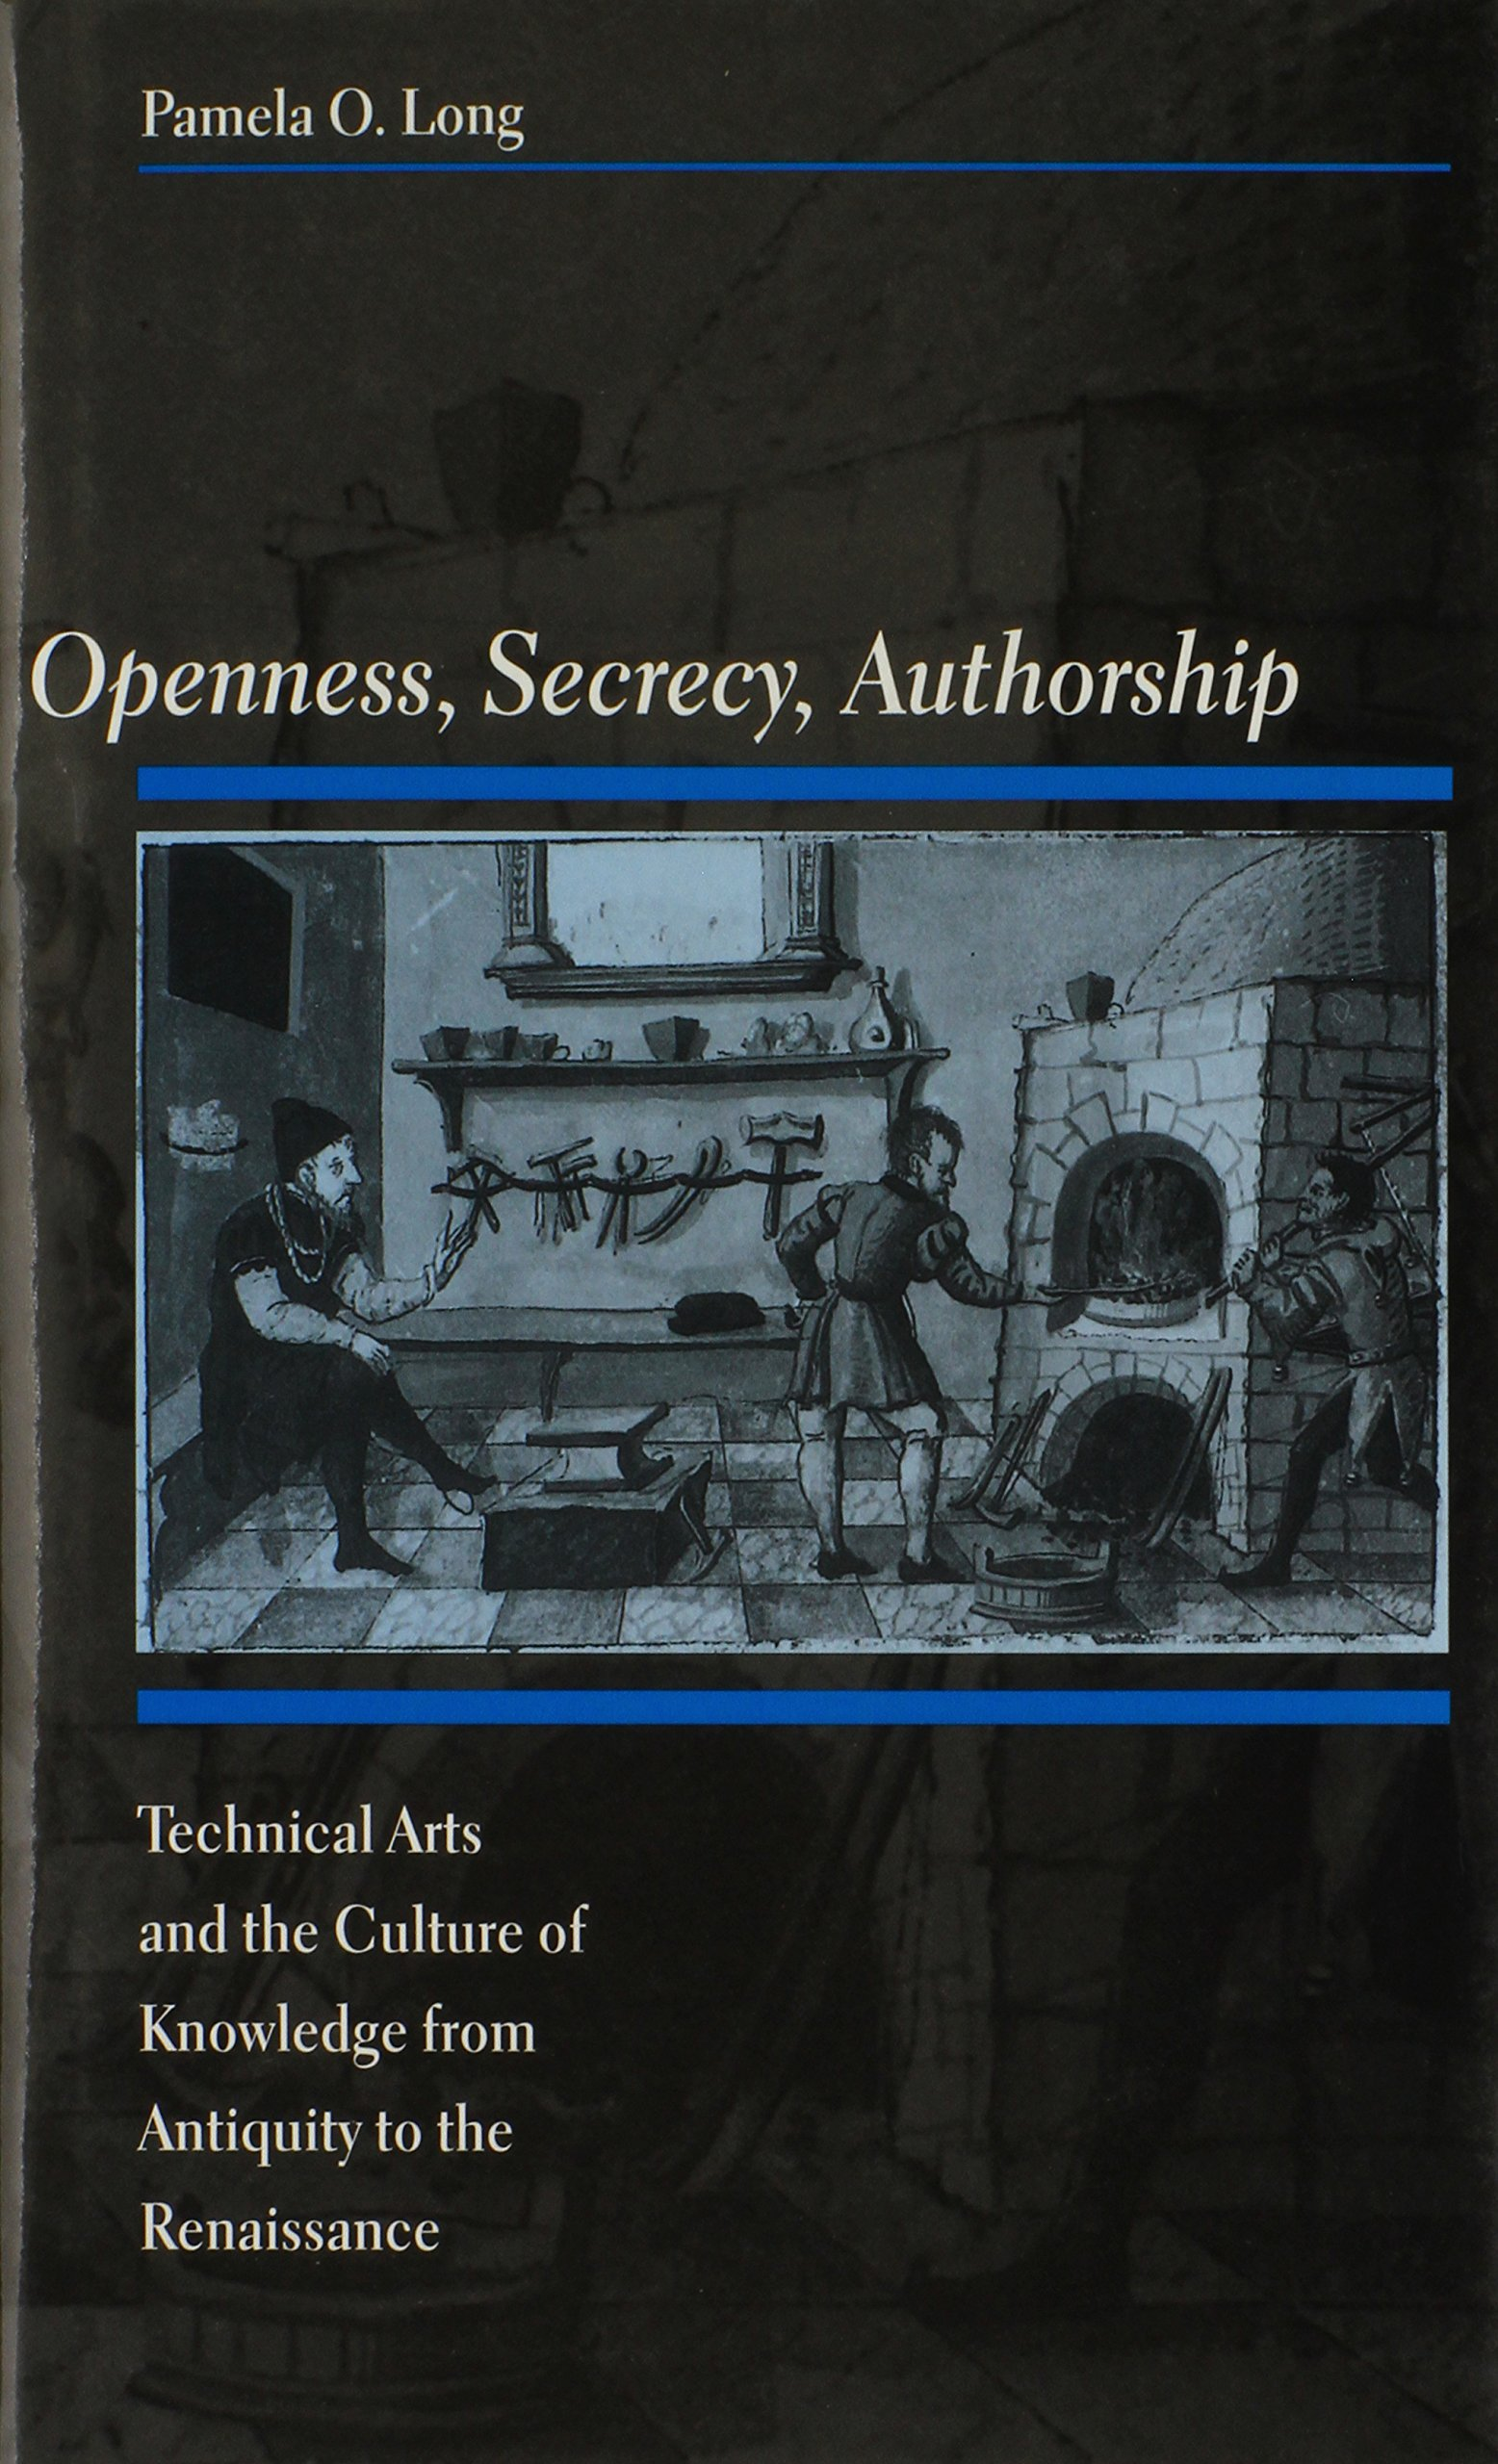 Download Openness, Secrecy, Authorship: Technical Arts and the Culture of Knowledge from Antiquity to the Renaissance ePub fb2 book